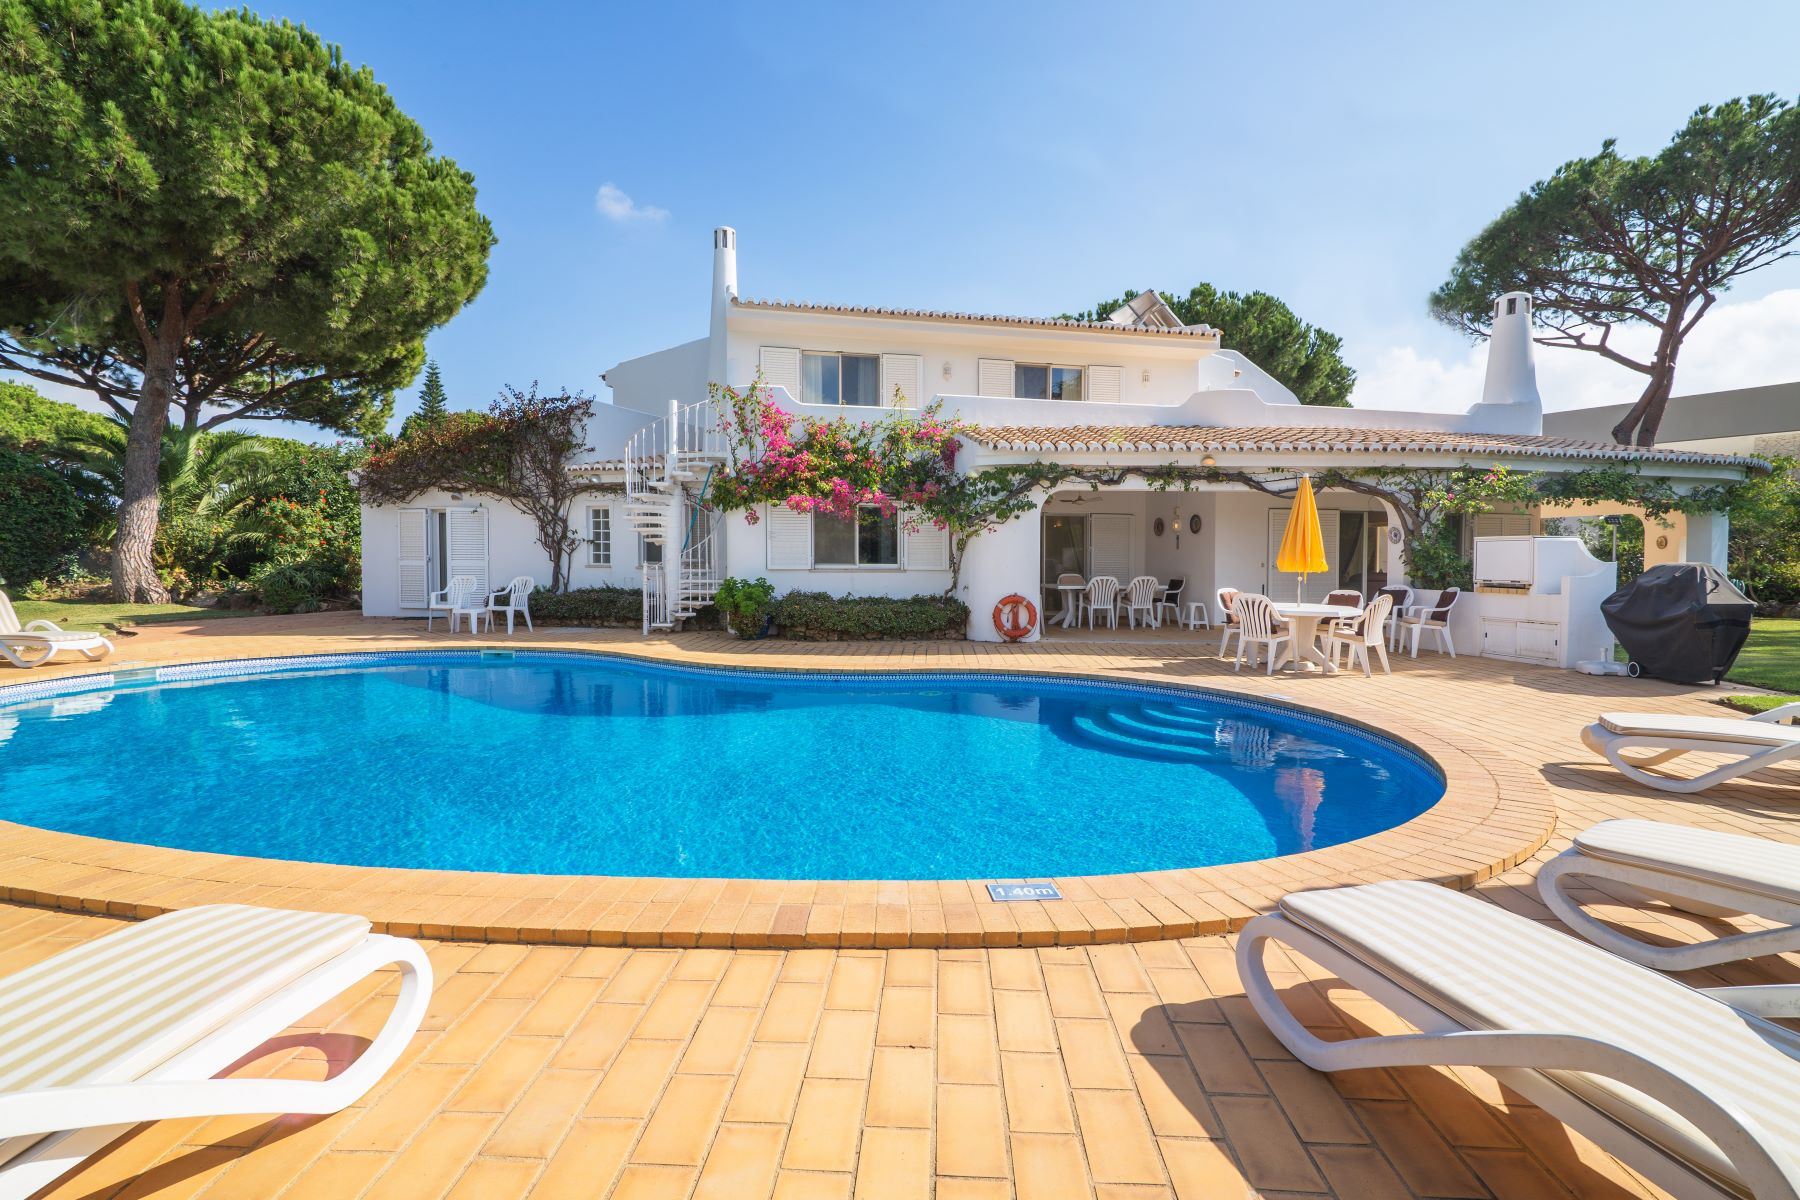 Single Family Home for Sale at Detached house, 4 bedrooms, for Sale Loule, Algarve, Portugal